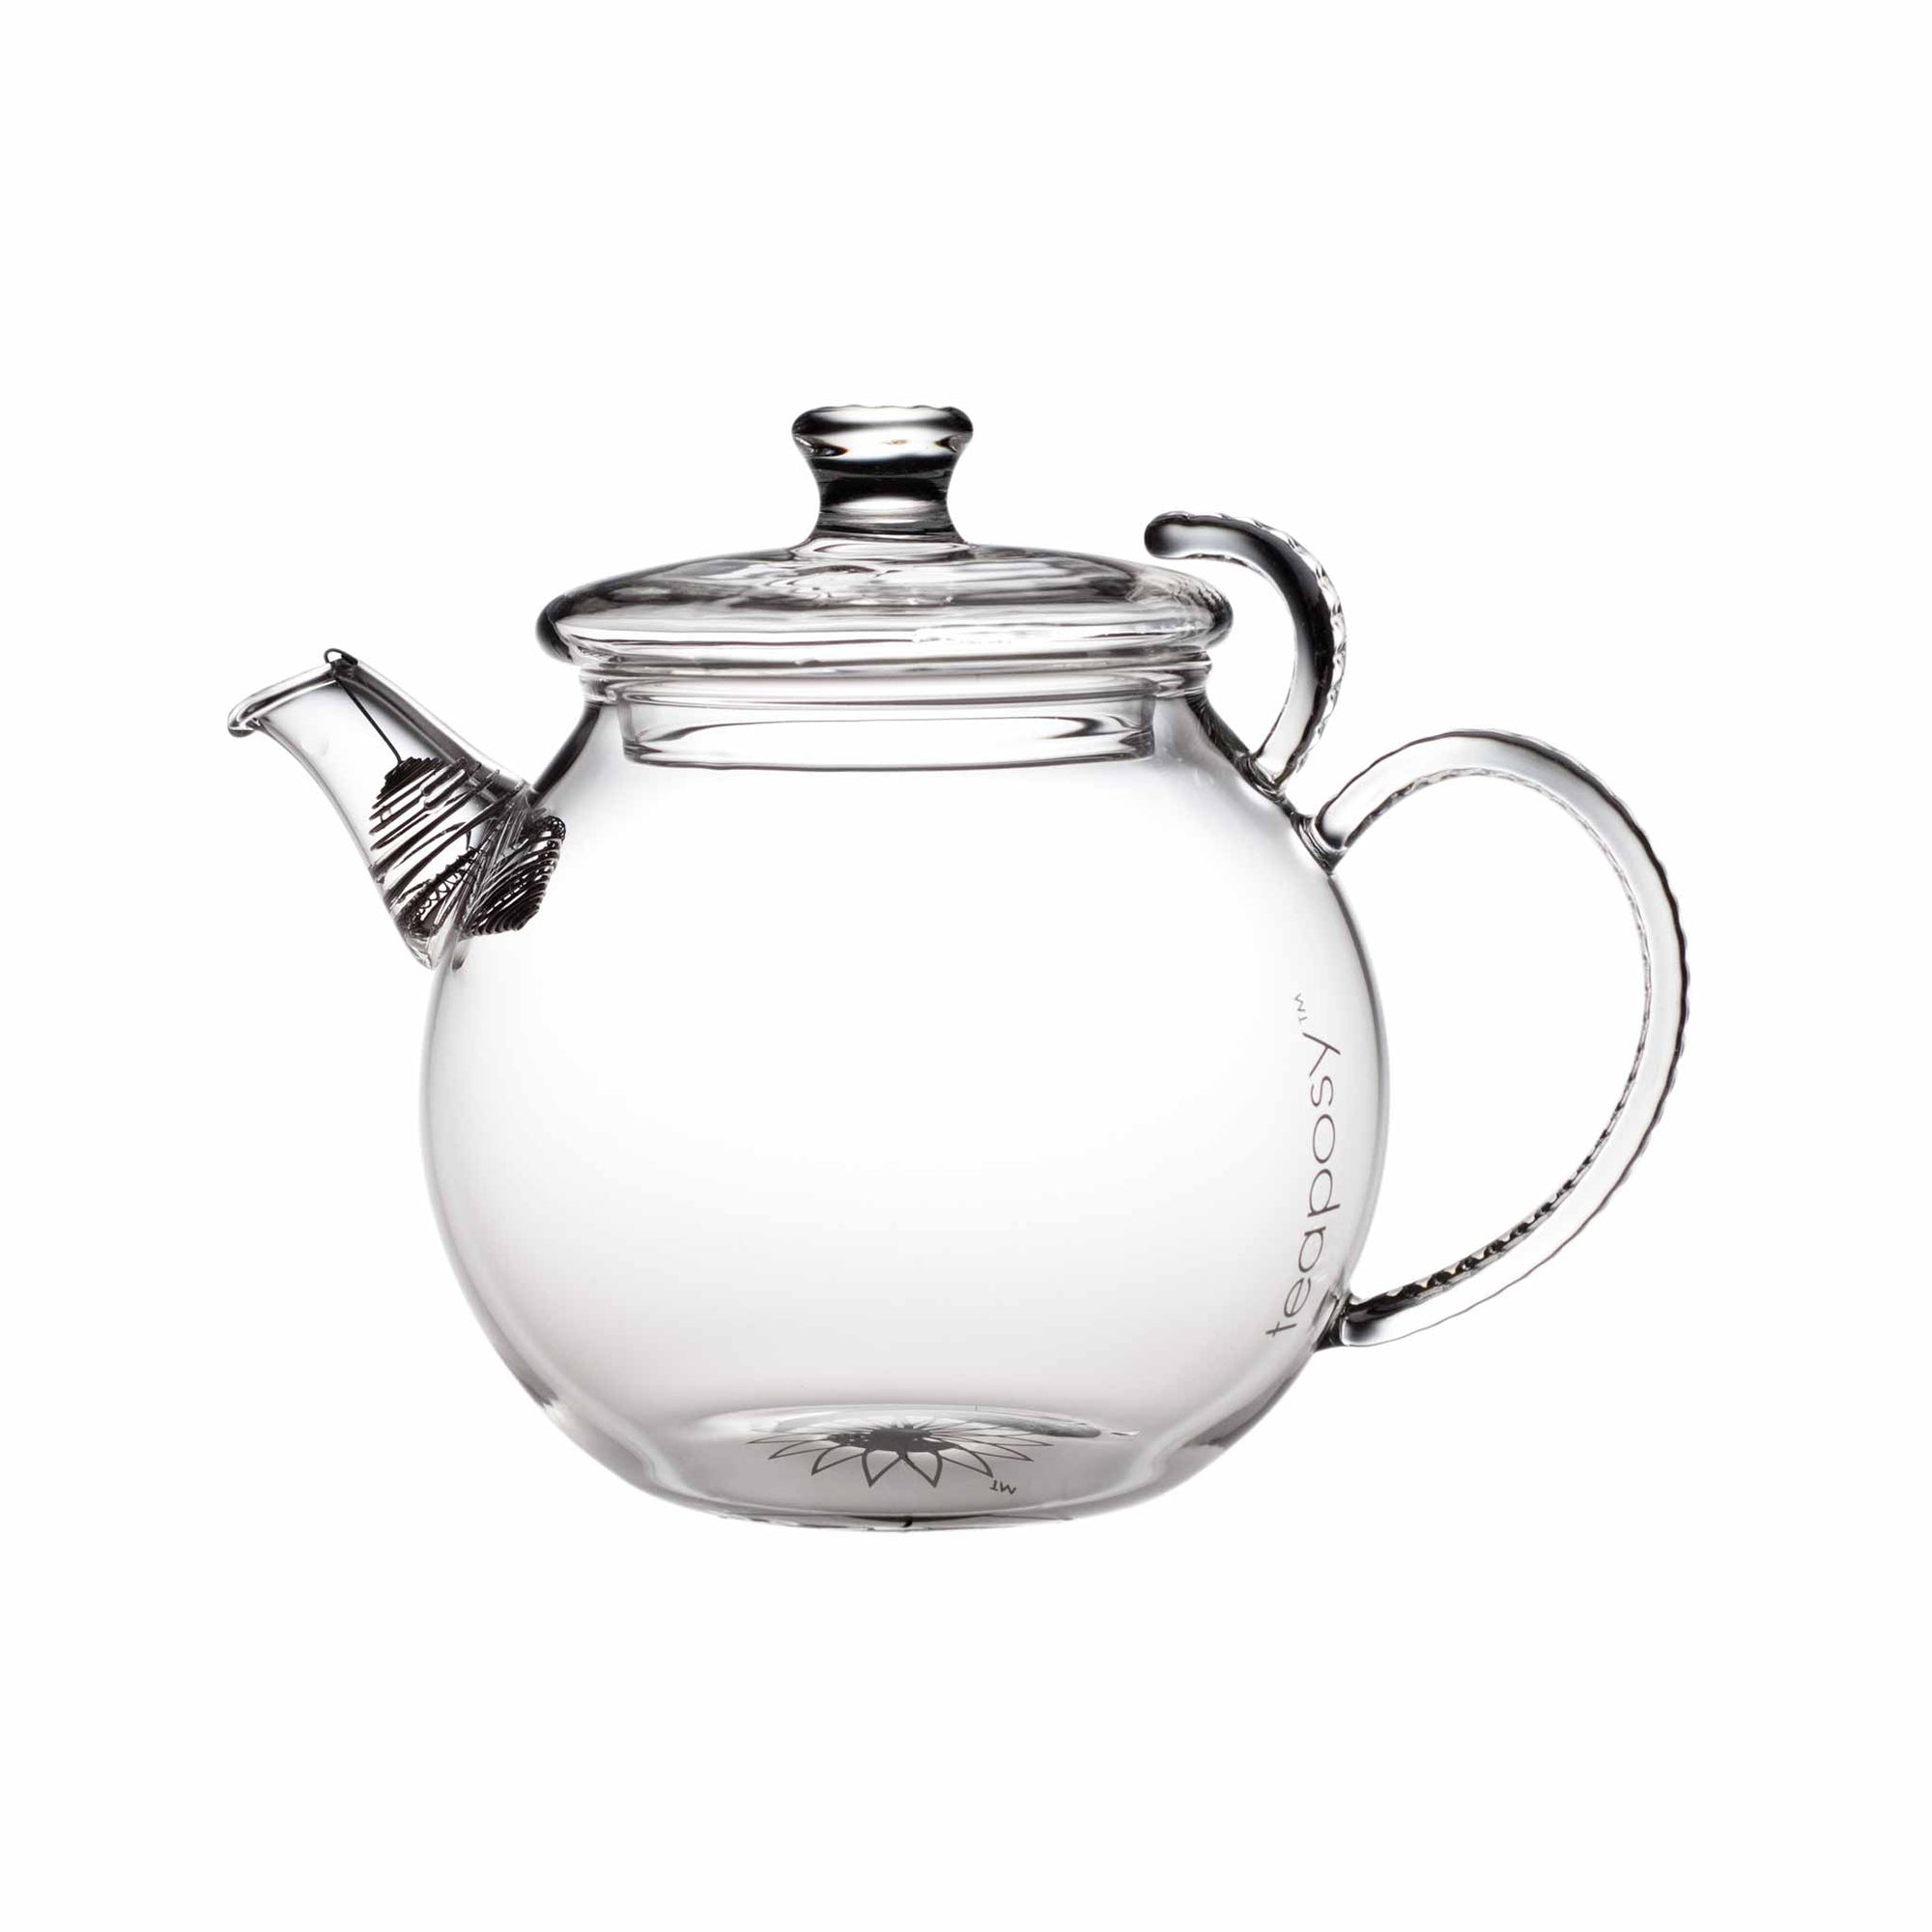 Teaposy daydream glass teapot, round shaped with crystal like handle, and a stainless steel filter at the spout